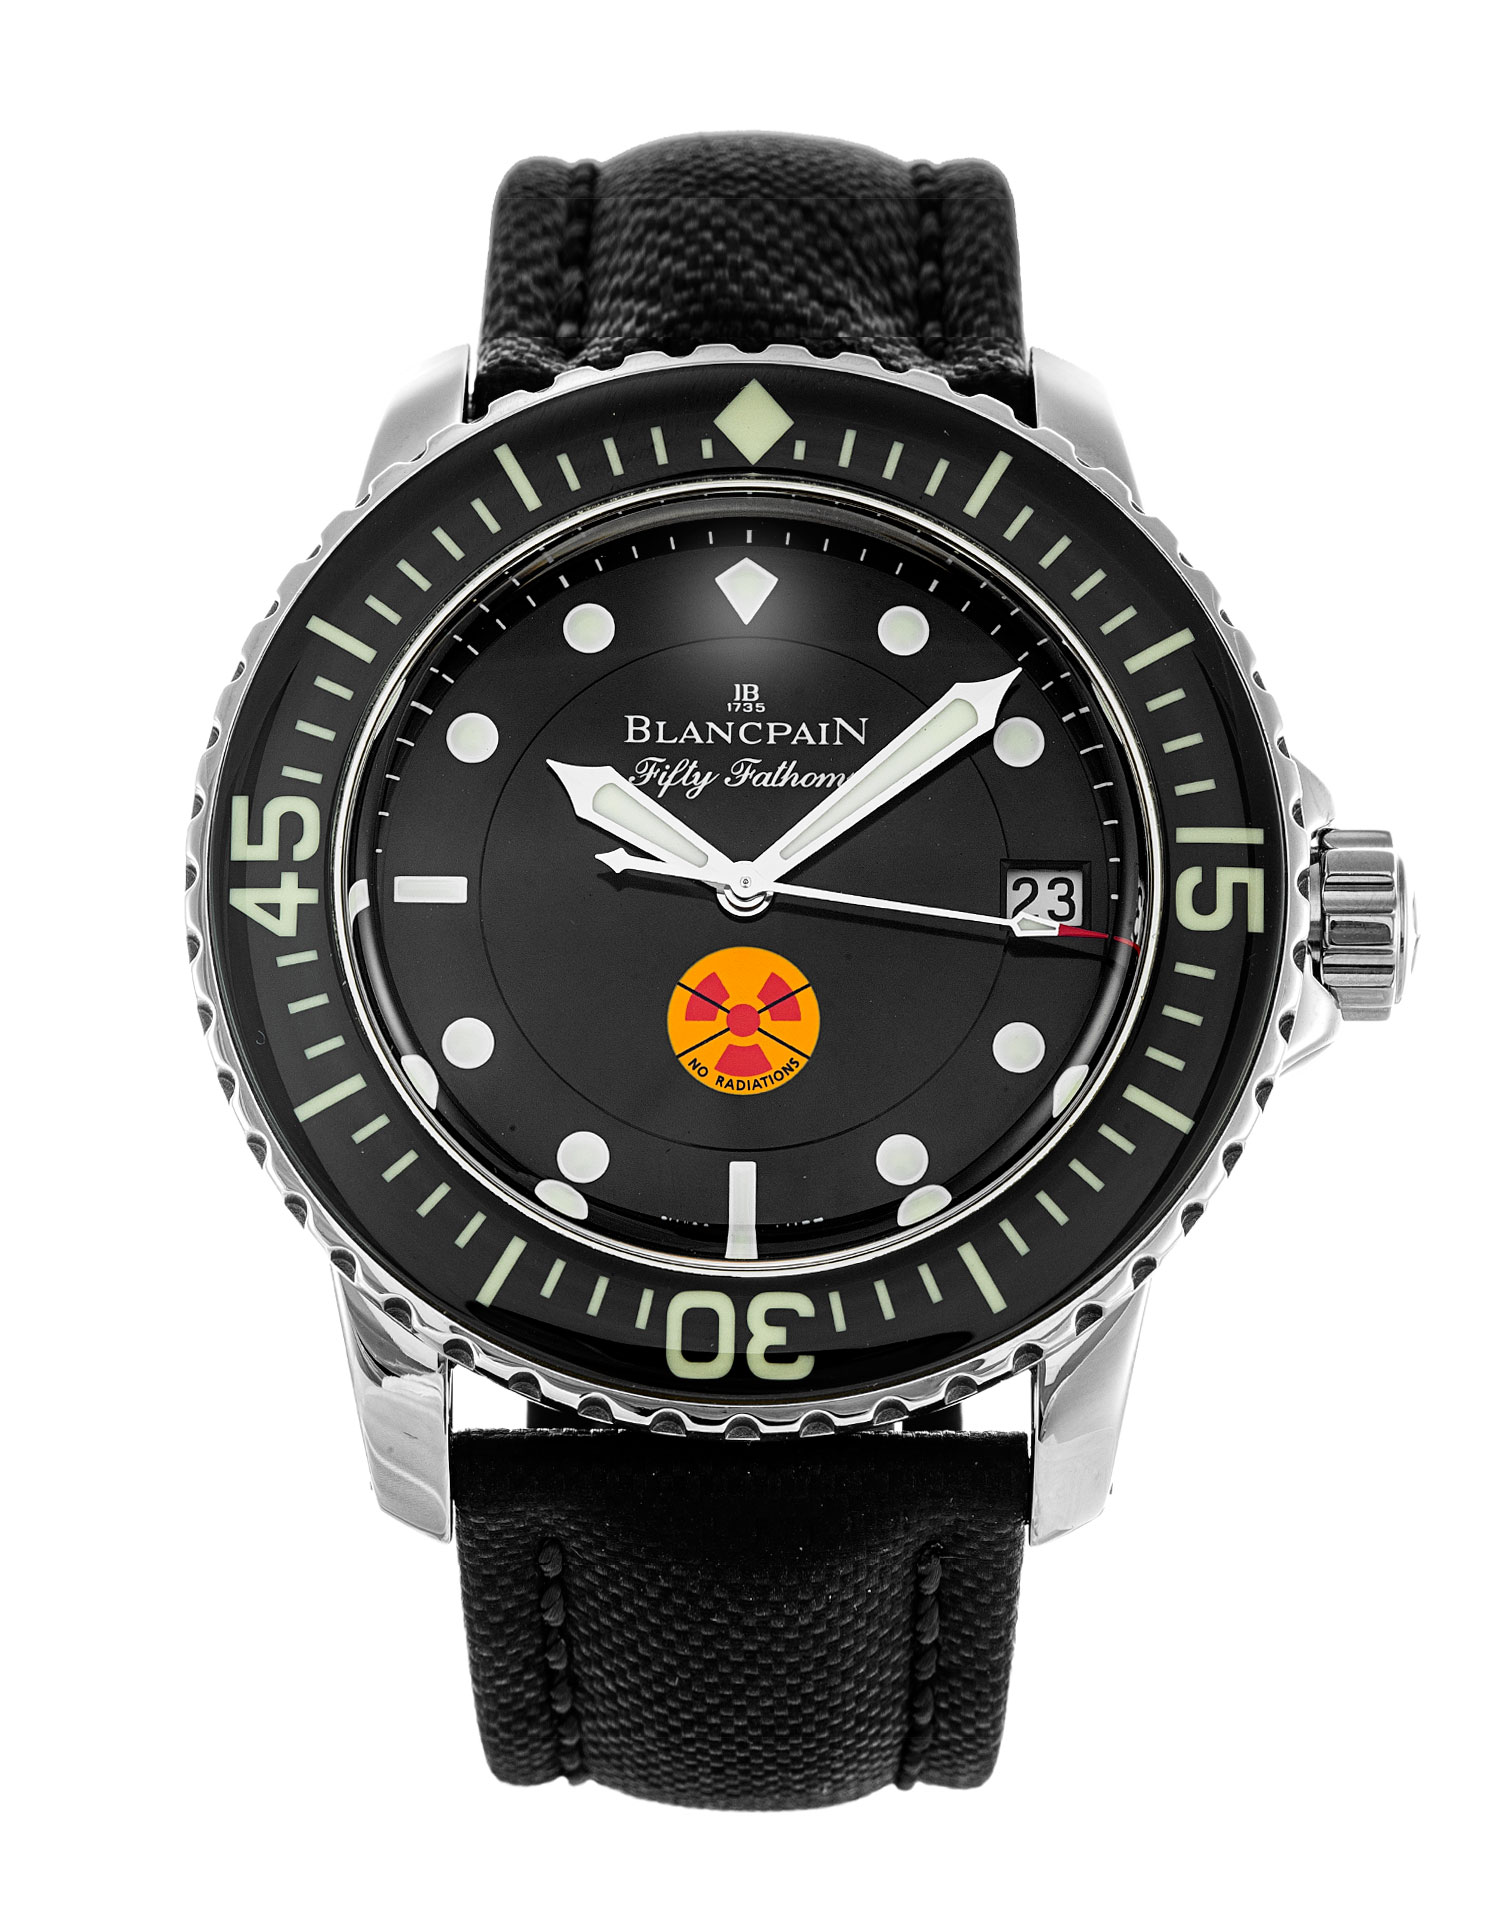 blancpain-fifty-fathoms-5015B-1130-52.jpg